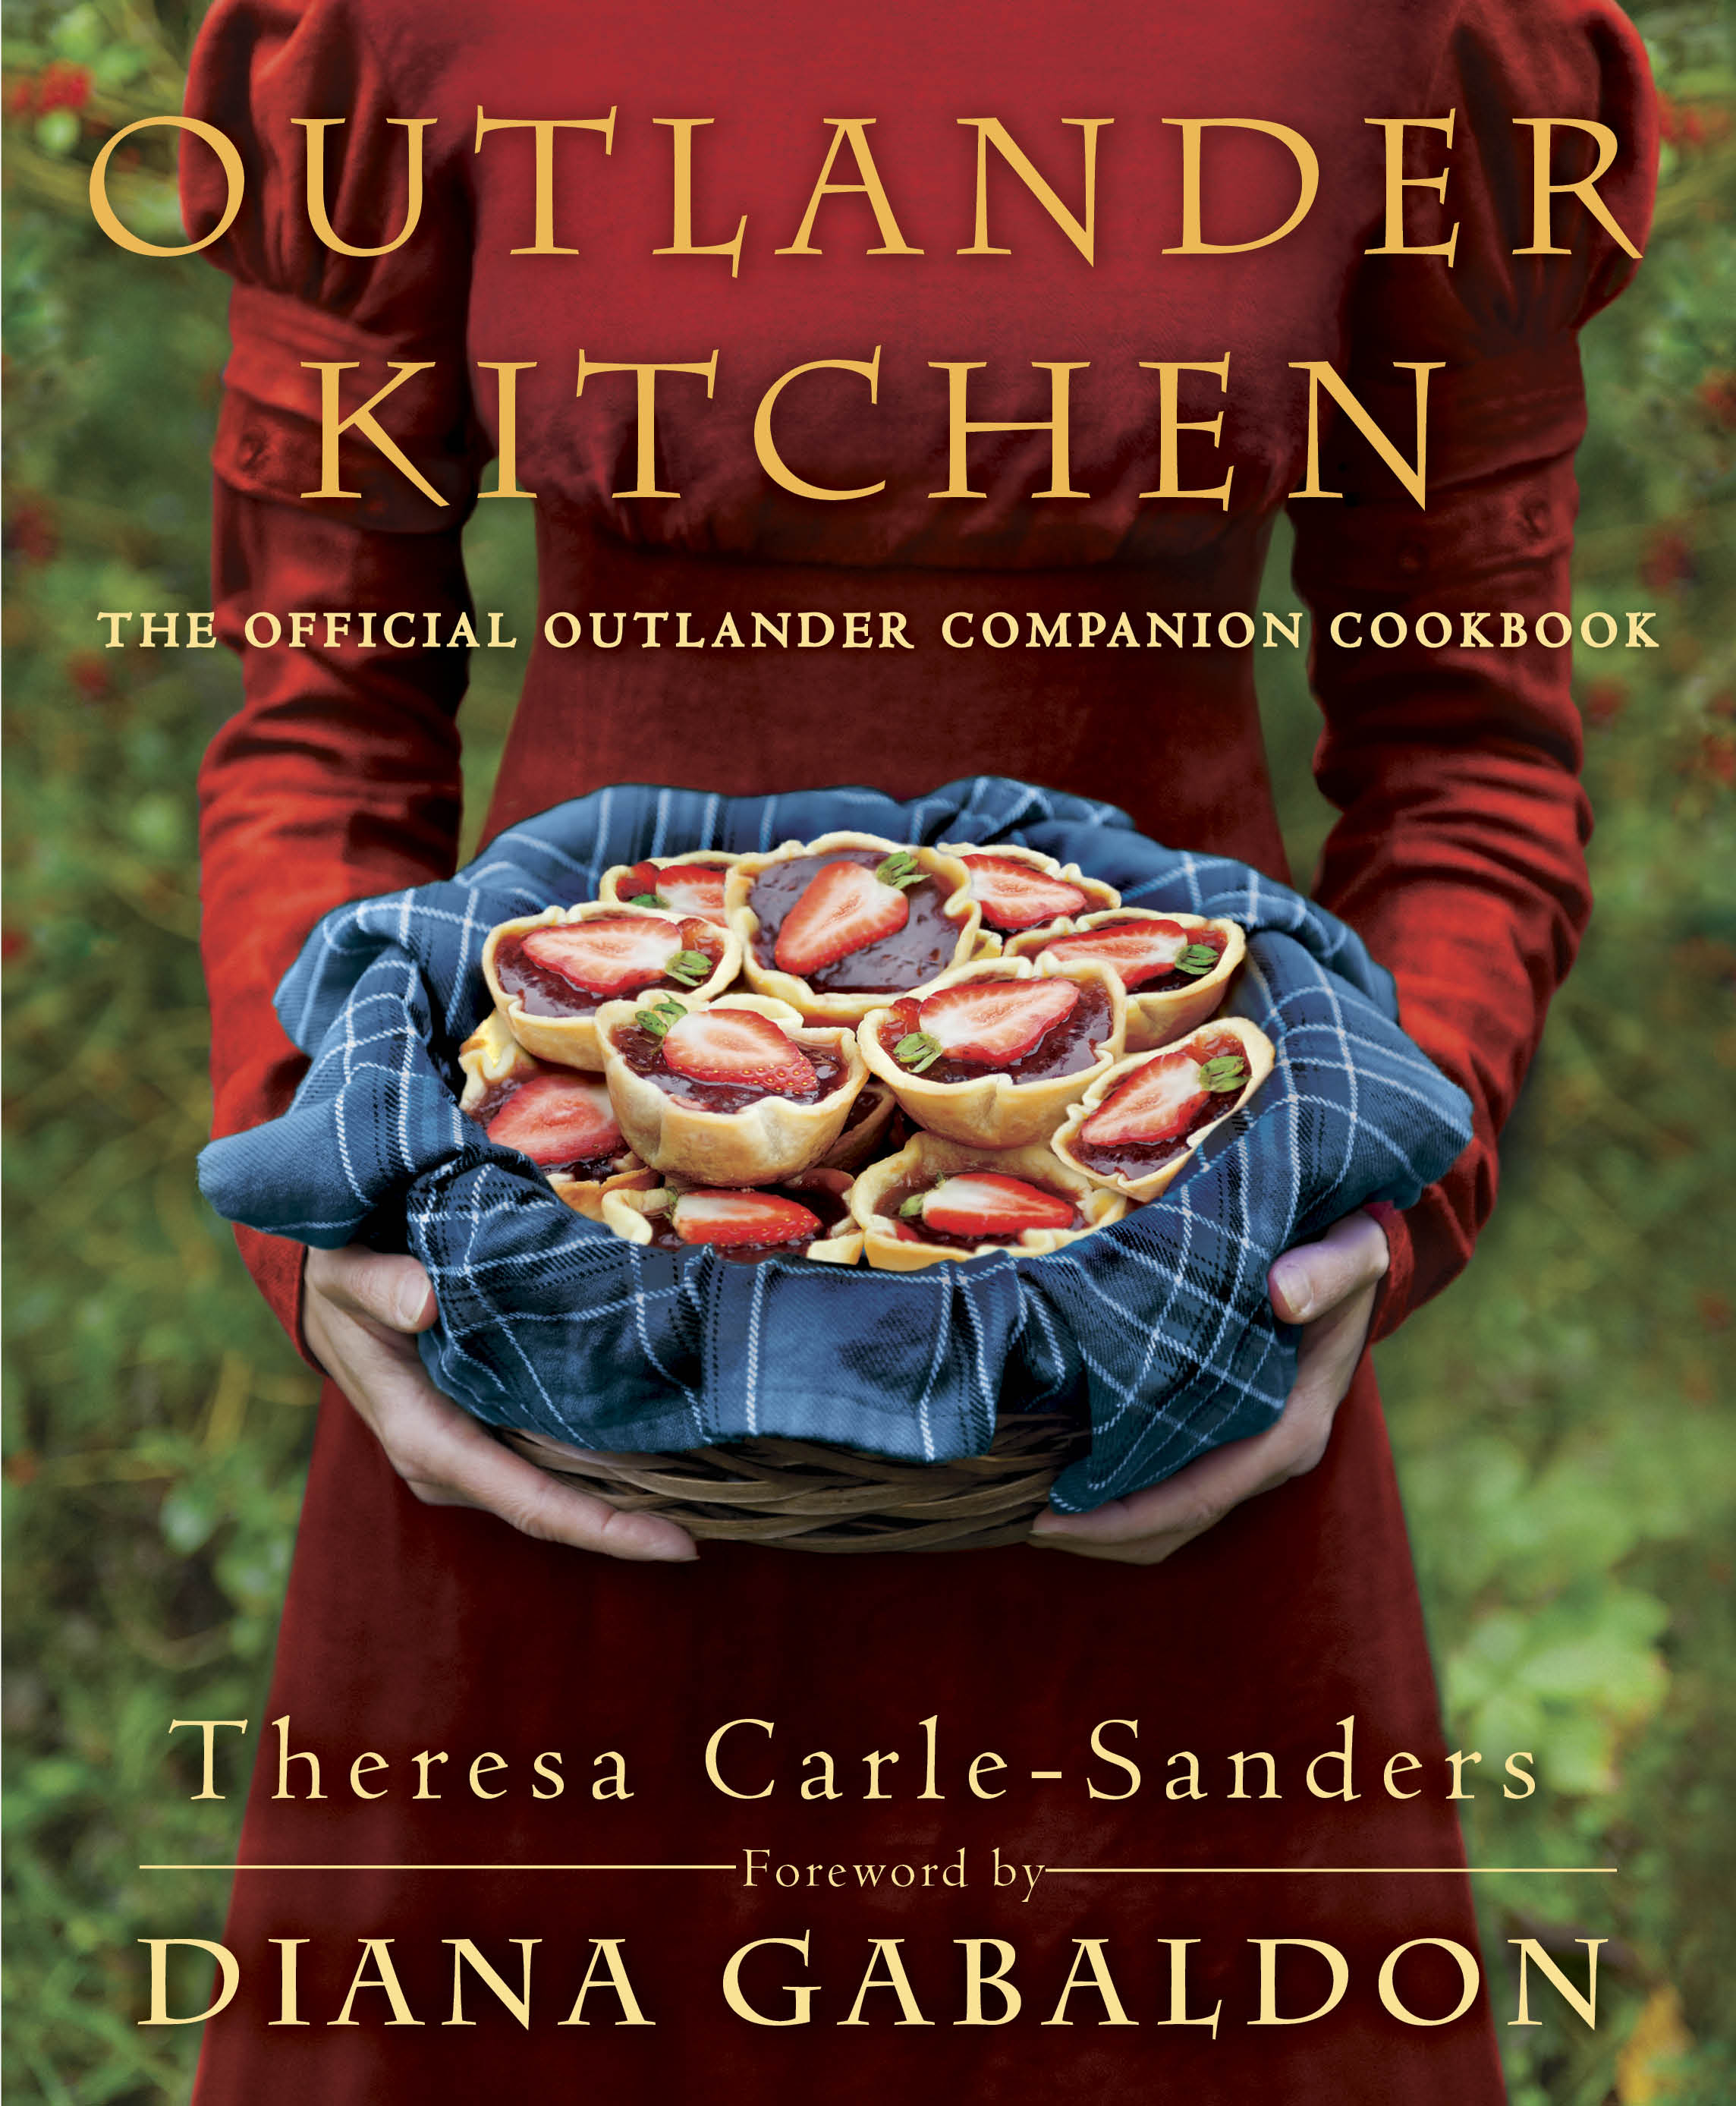 Episode 145: Theresa Carle-Sanders and The Official Outlander Companion Cookbook